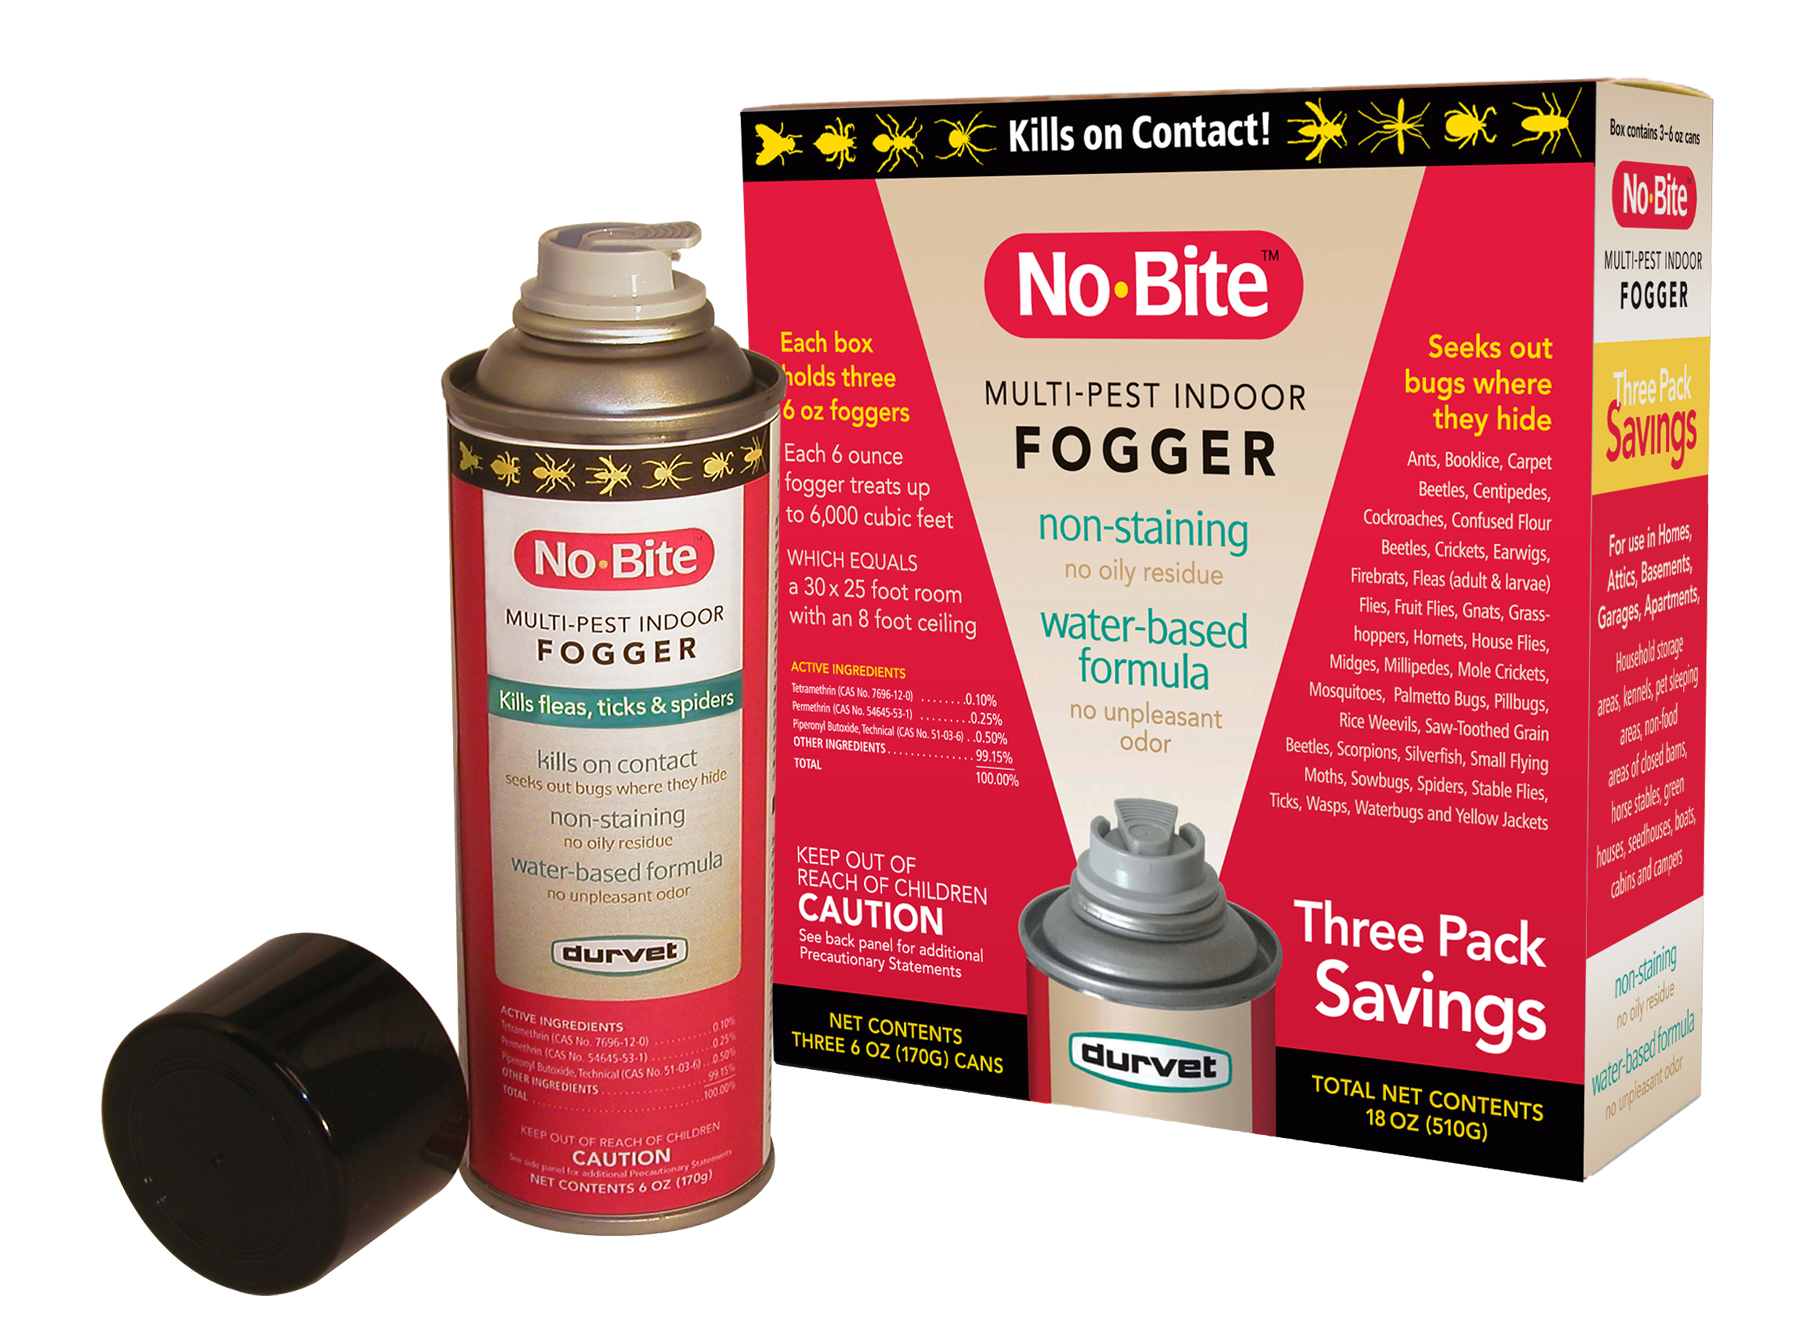 No-Bite Multi-Pest Fogger